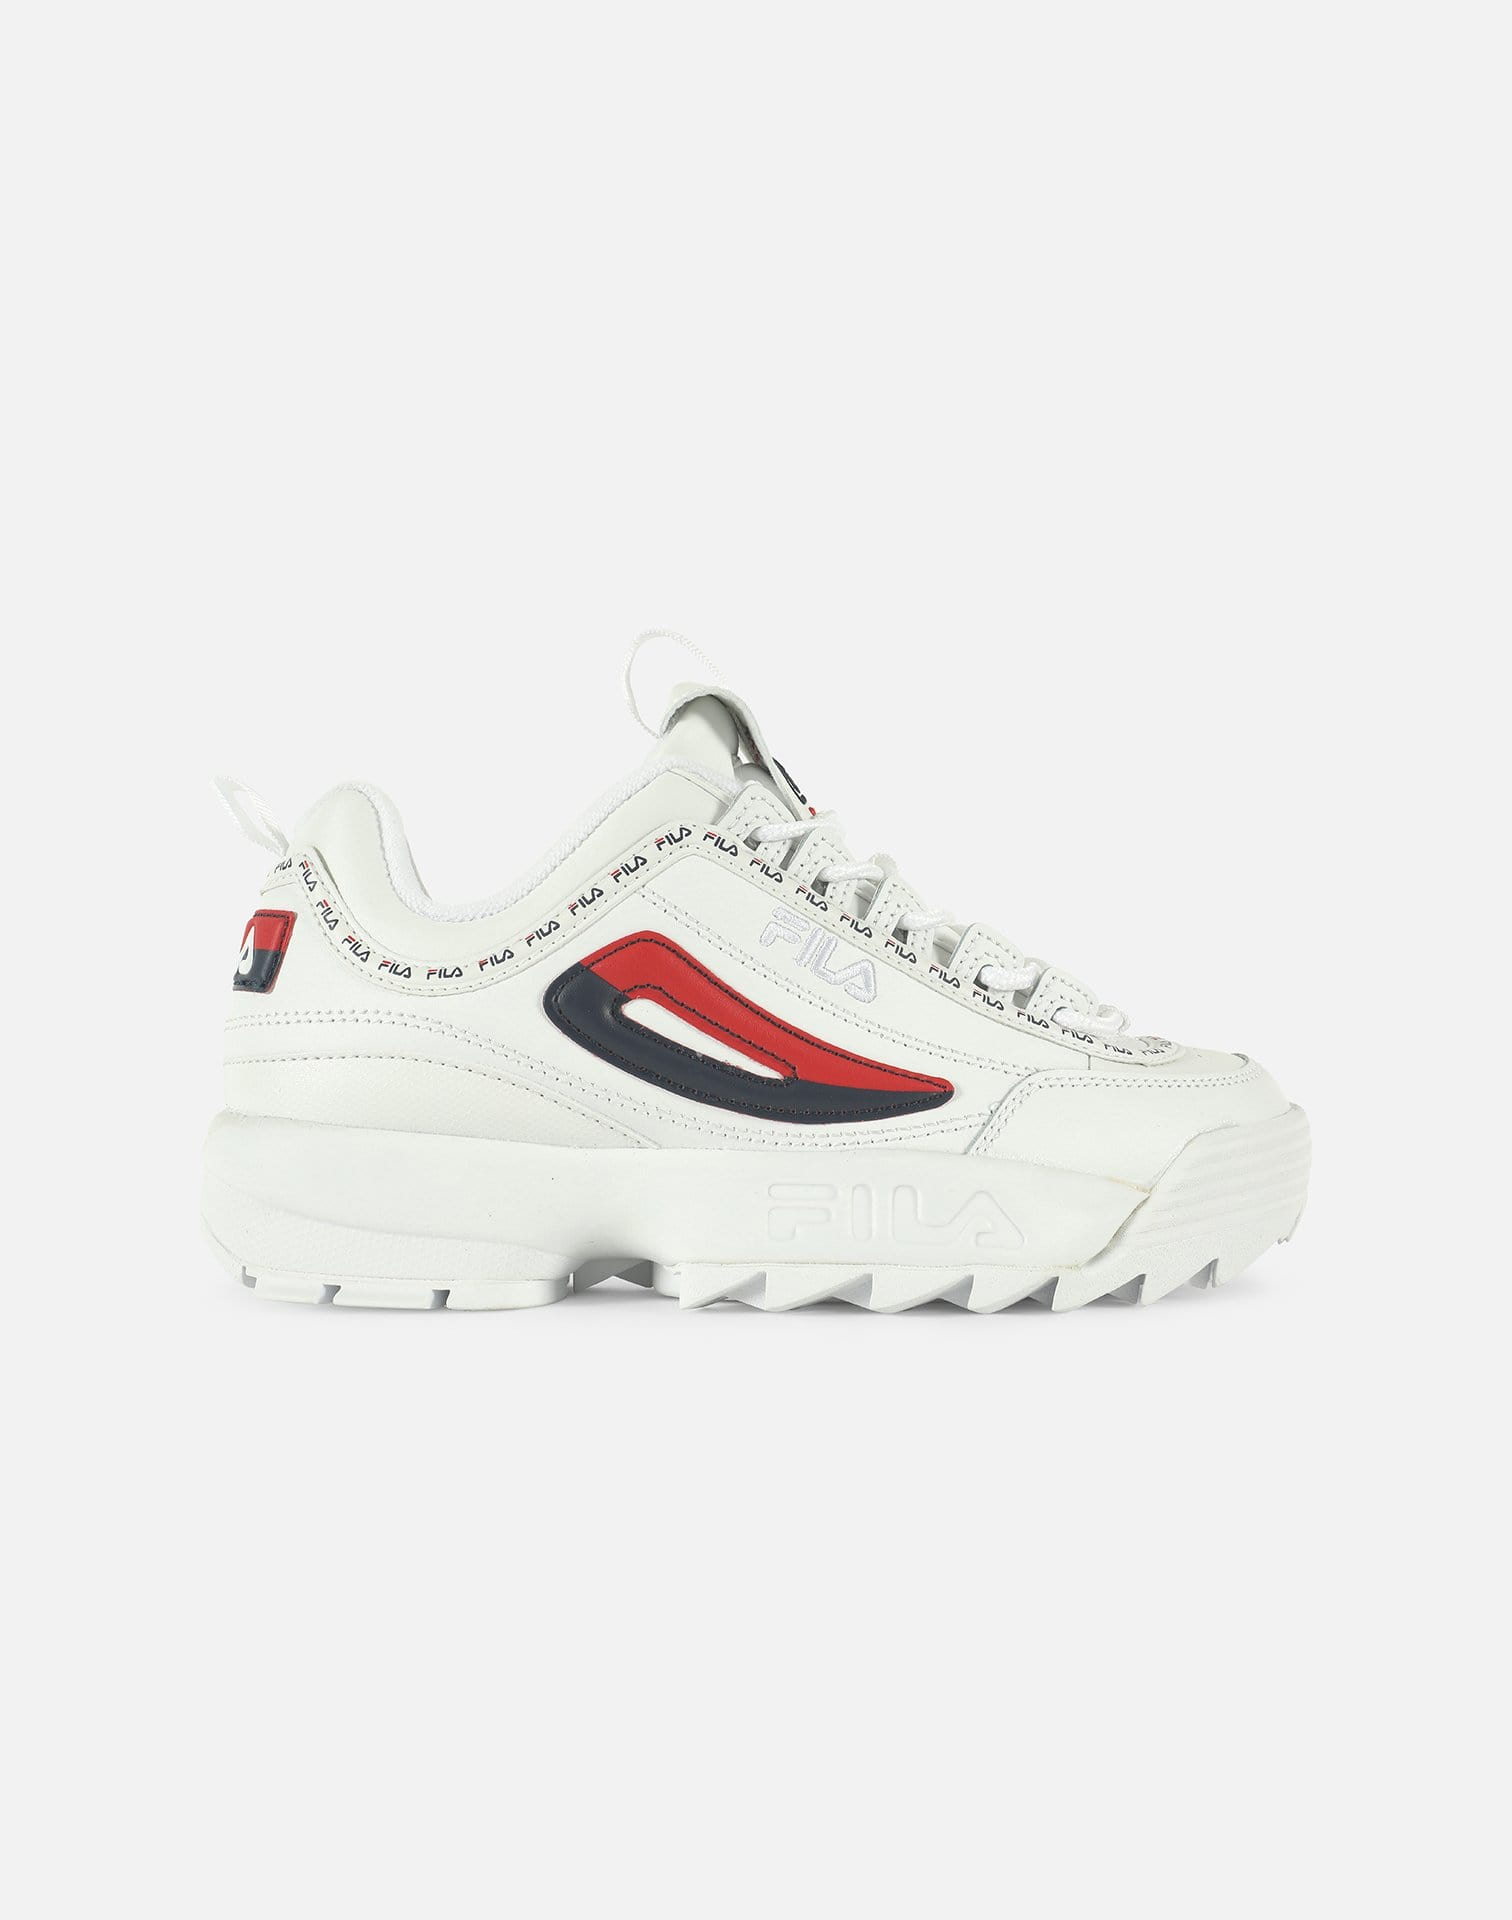 FILA Women's Disruptor 2 Premium Repeat